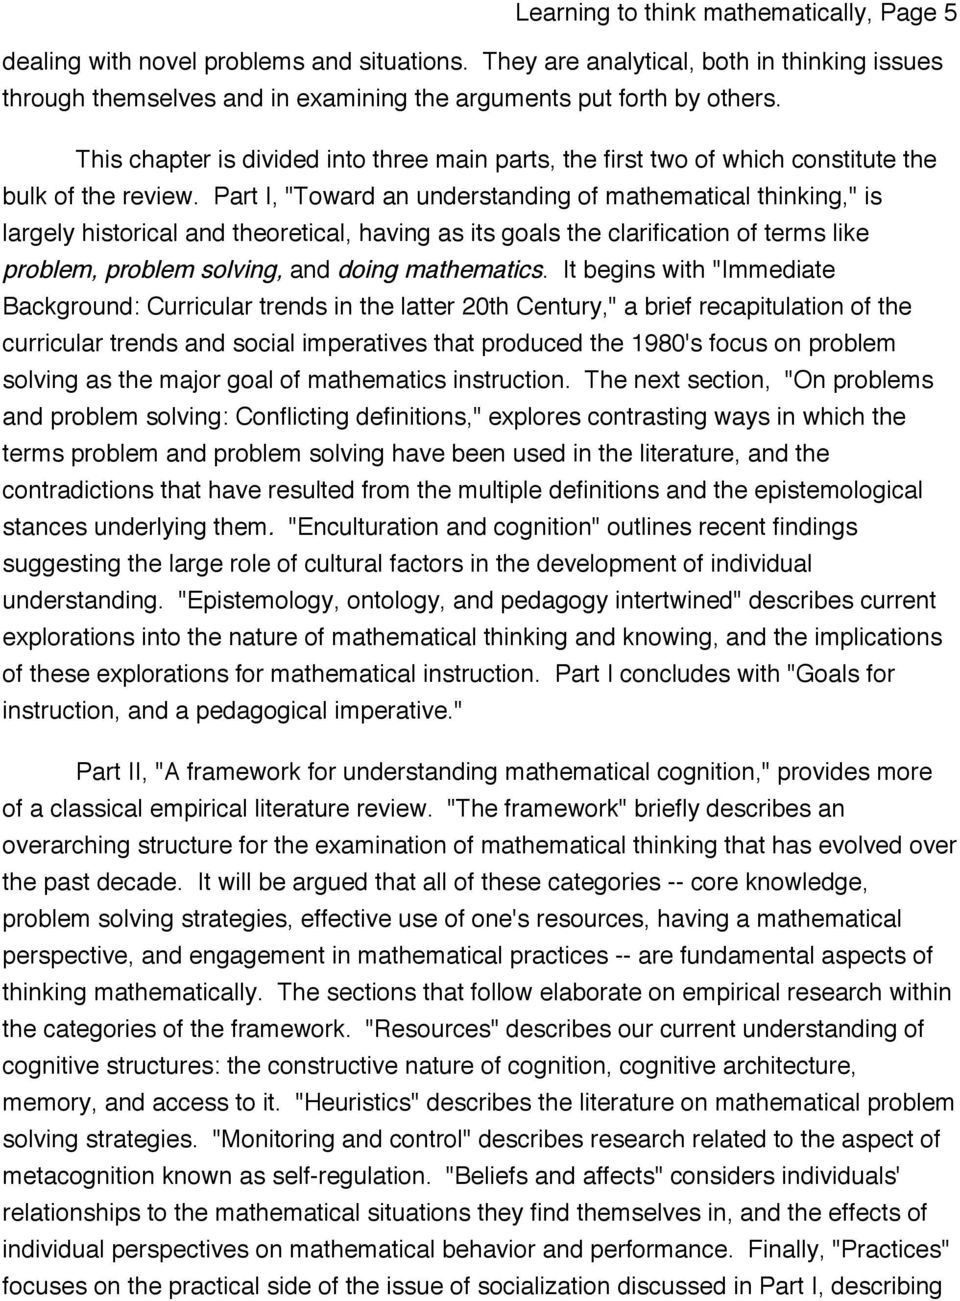 "Part I, ""Toward an understanding of mathematical thinking,"" is largely historical and theoretical, having as its goals the clarification of terms like problem, problem solving, and doing mathematics."